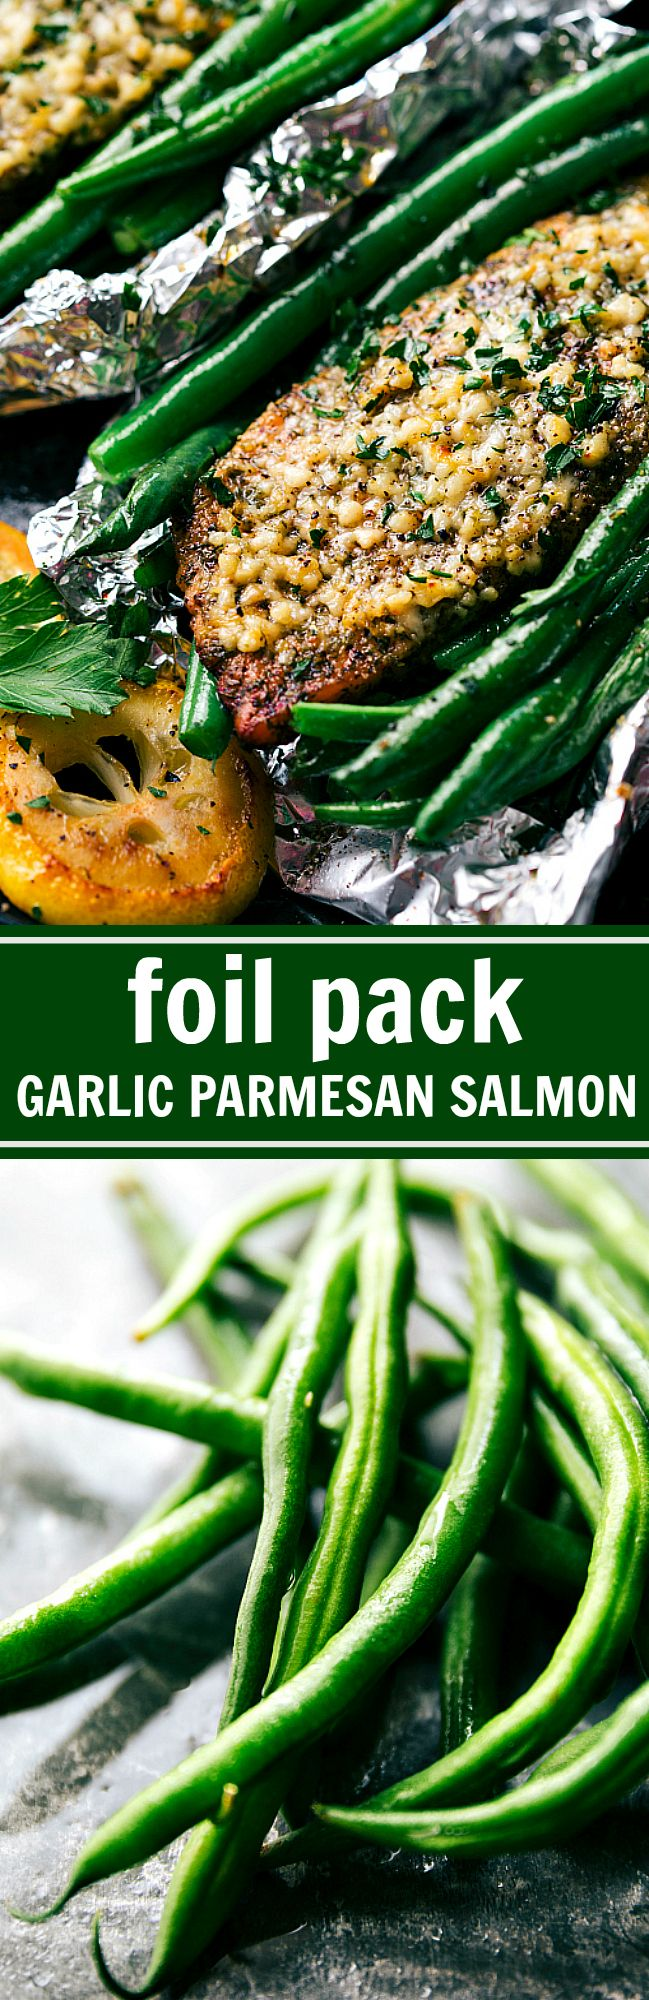 30 MINUTE DINNER! So fast and easy to make! Lemon garlic parmesan salmon and green beans in foil packets cooked over the grill or in the oven.